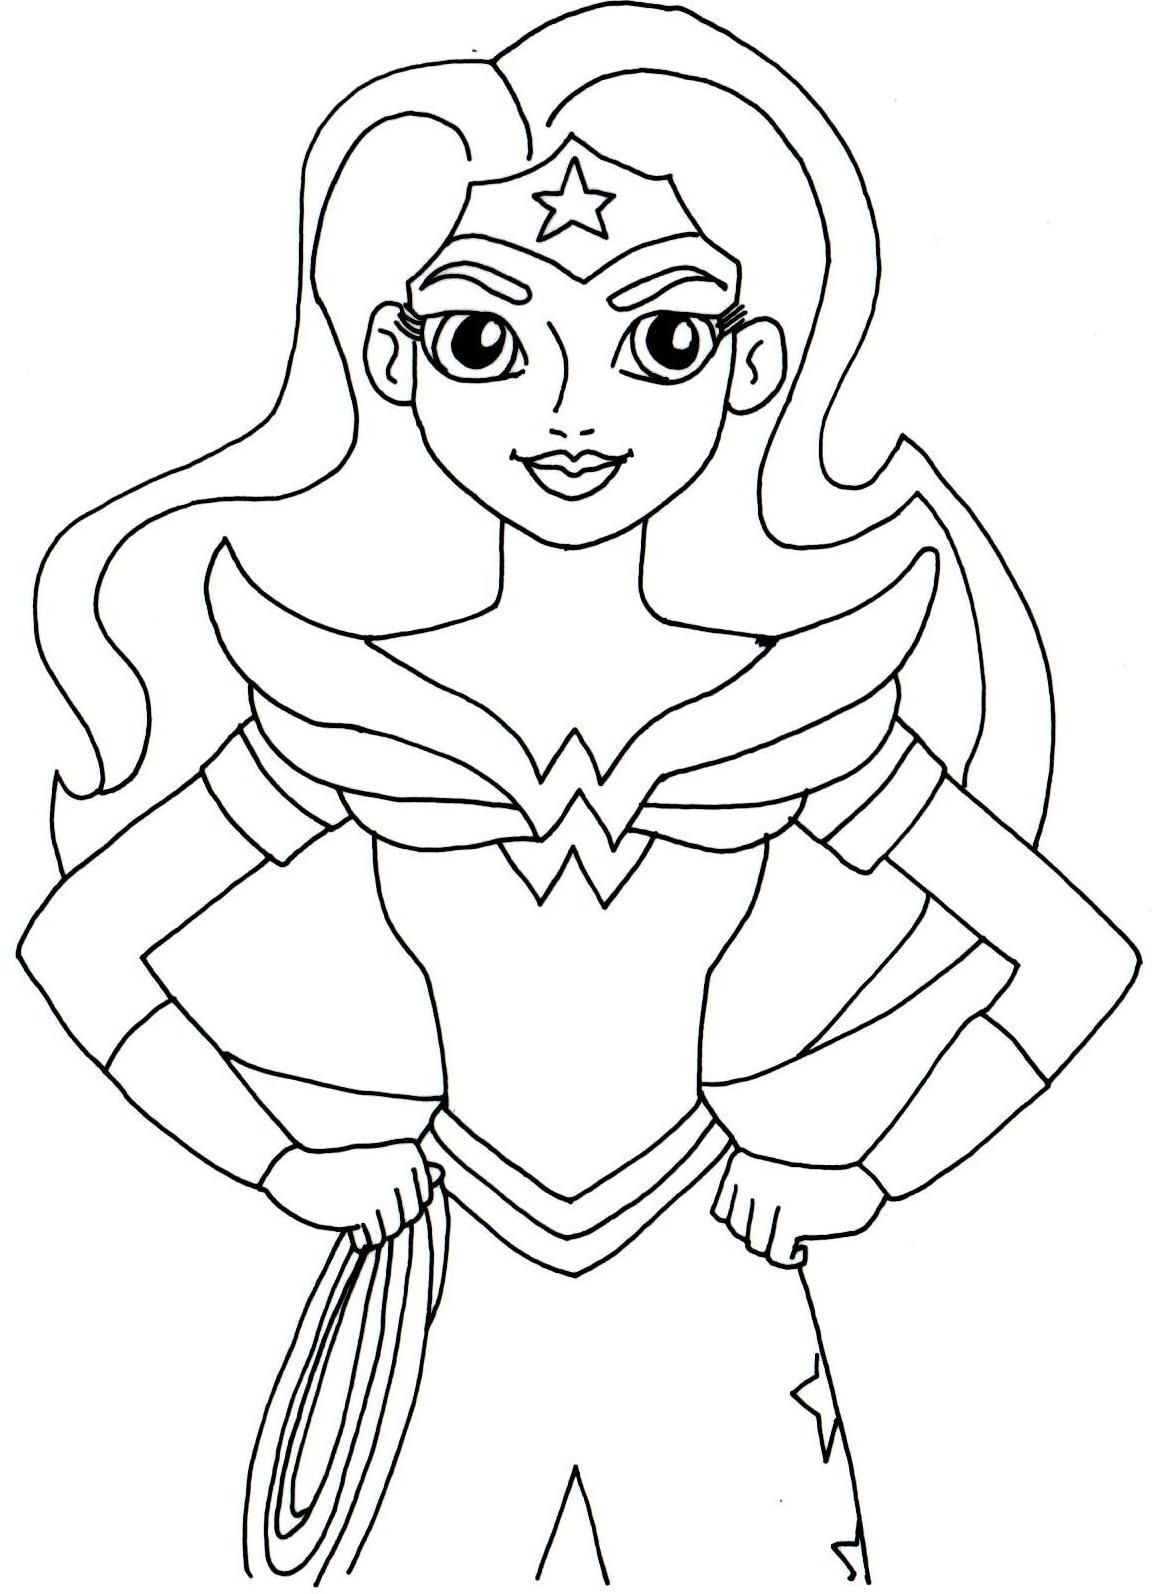 1159x1594 Wonder Woman Coloring Pages To Print Coloring For Kids